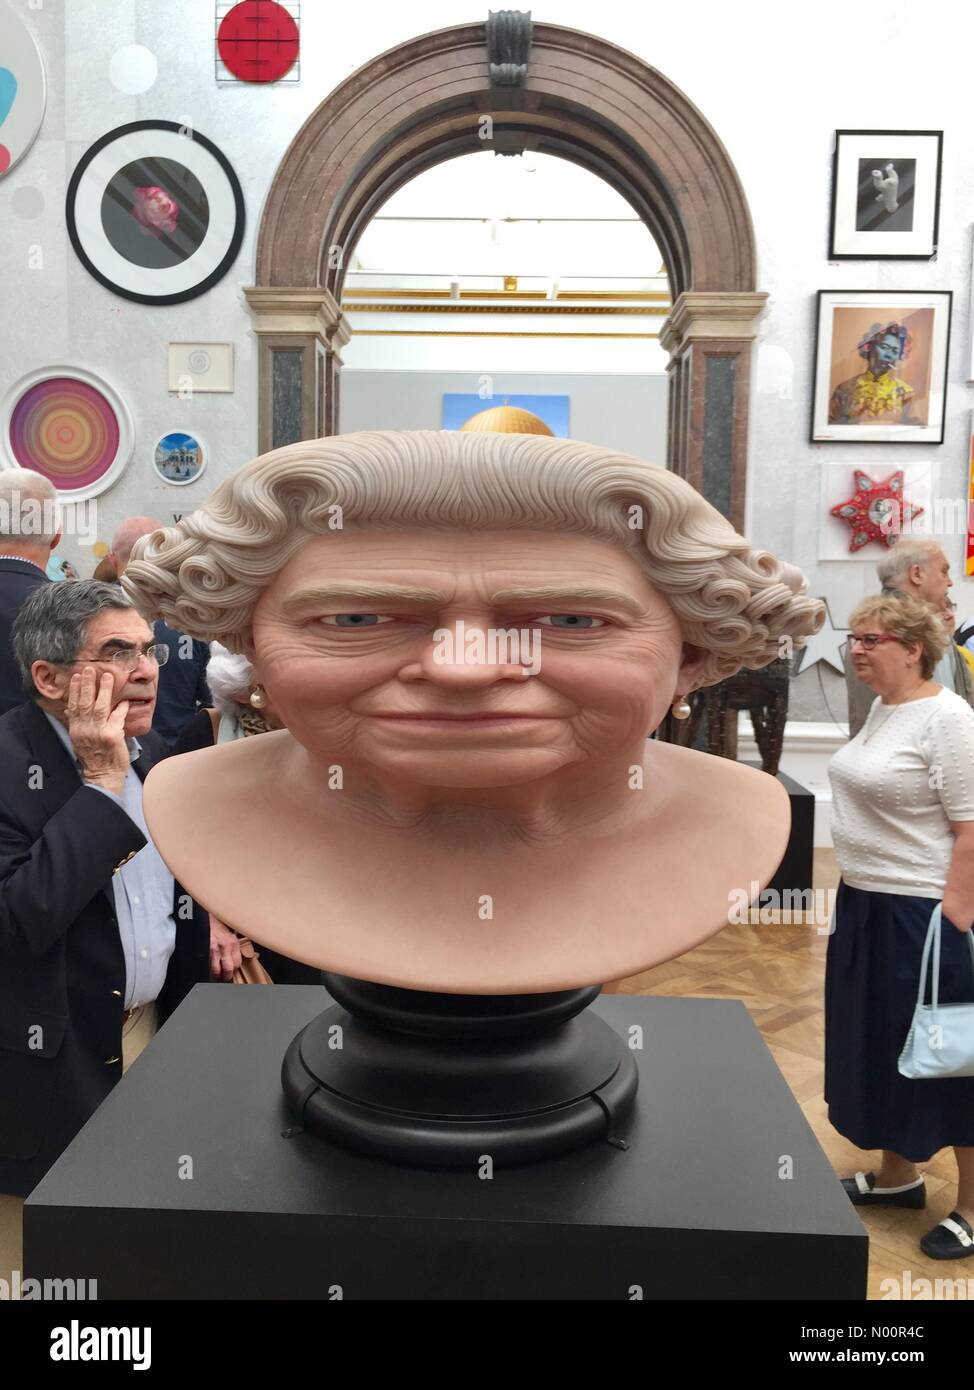 Royal Academy of Arts Summer Open Exhibition Private View Launch with stretched queens head sculpture by John Humphries. Stock Photo